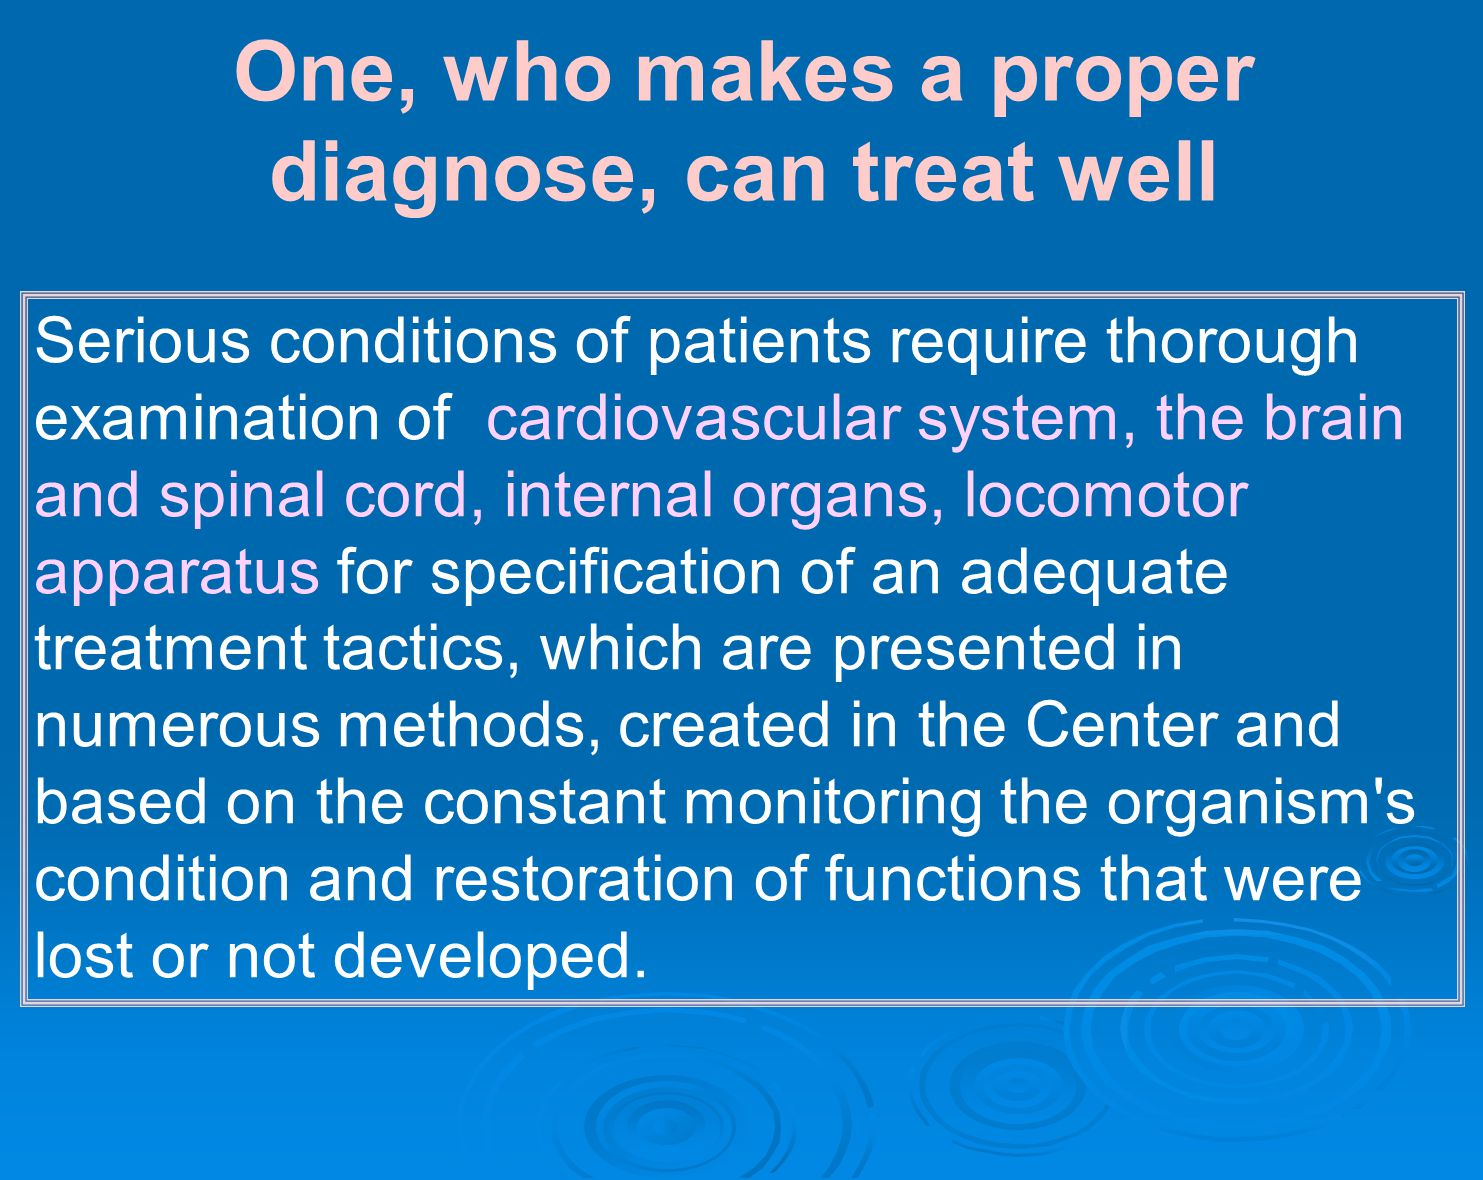 One, who makes a proper diagnose, can treat well Serious conditions of patients require thorough examination of cardiovascular system, the brain and spinal cord, internal organs, locomotor apparatus for specification of an adequate treatment tactics, which are presented in numerous methods, created in the Center and based on the constant monitoring the organism s condition and restoration of functions that were lost or not developed.